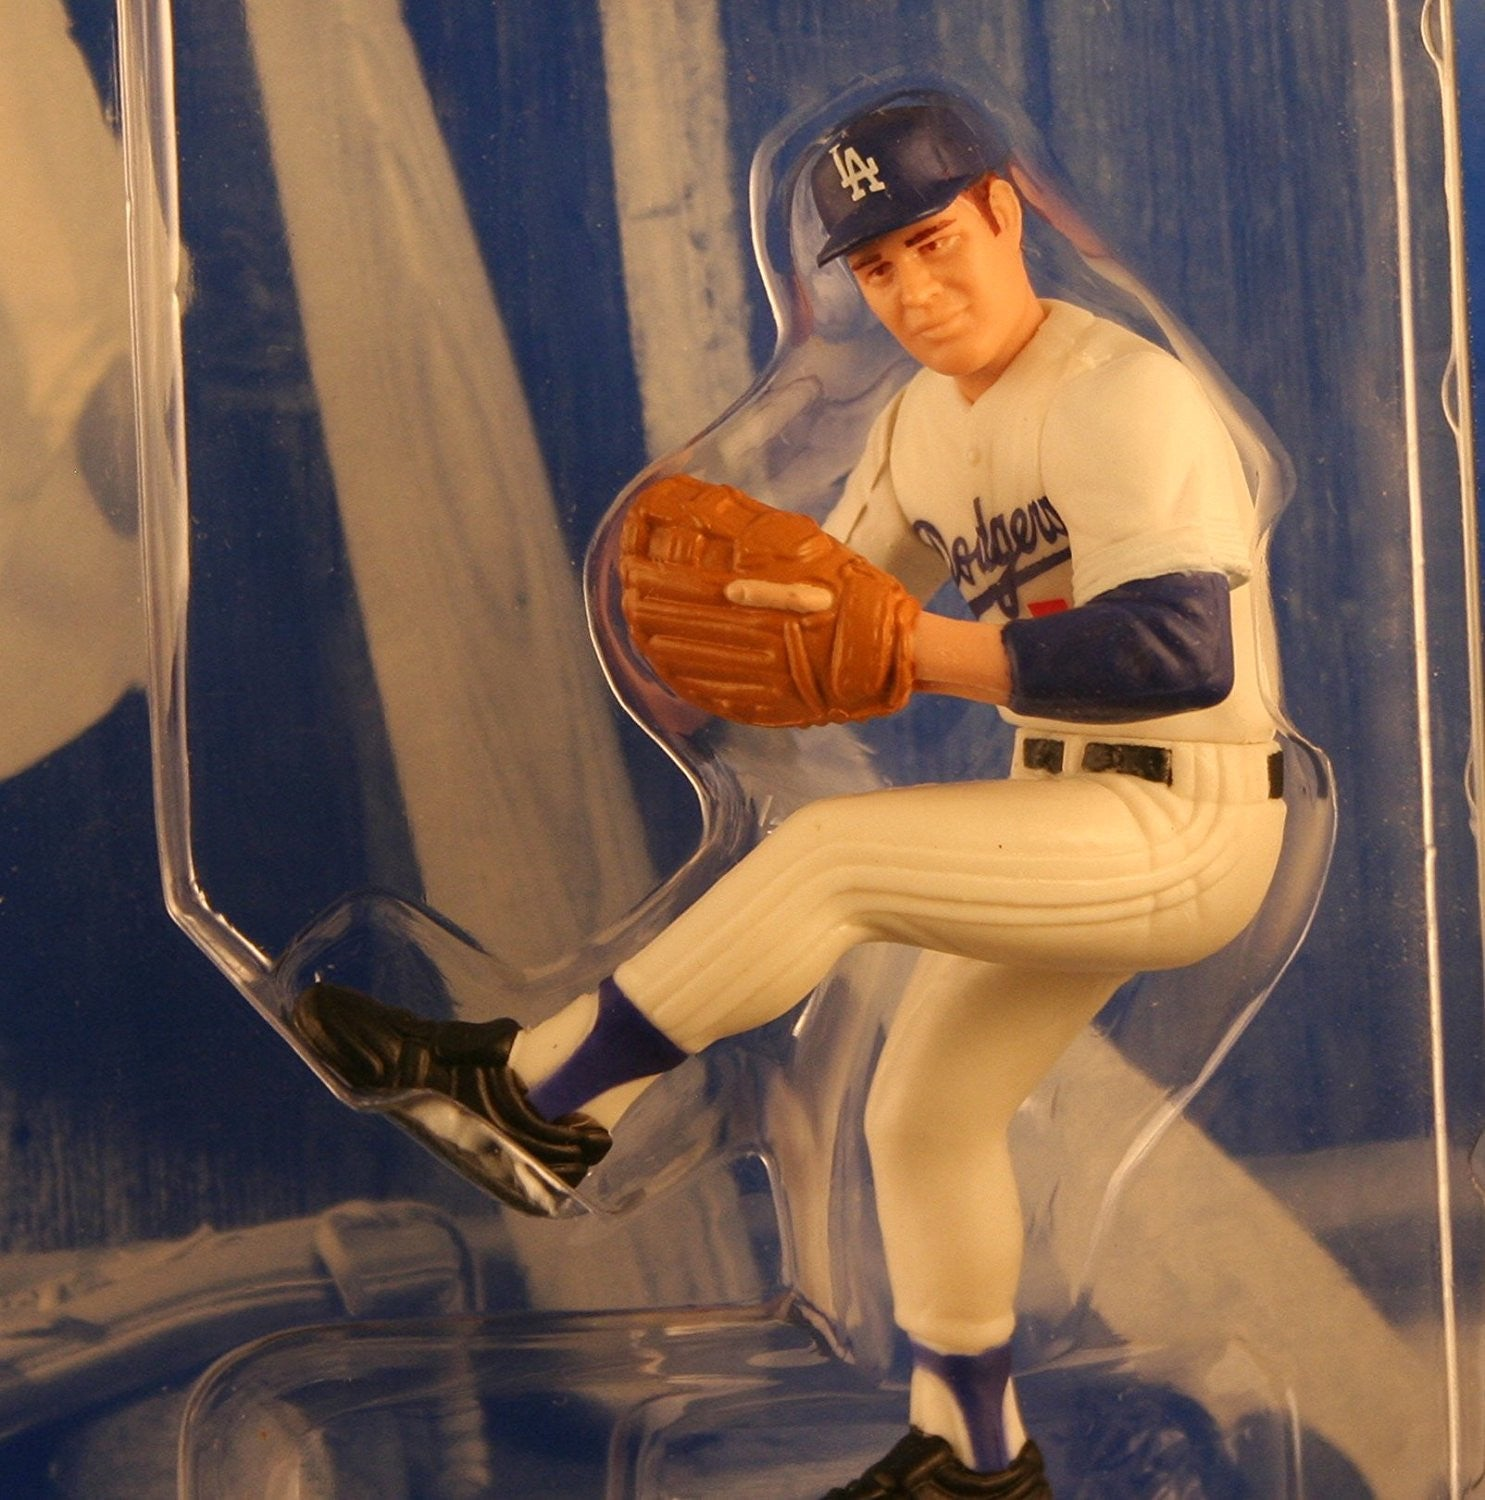 HIDEO NOMO / LOS ANGELES DODGERS & DON DRYSDALE / LOS ANGELES DODGERS 1997 MLB Classic Doubles * Winning Pairs Series * Starting Lineup Action Figures & 2 Exclusive Collector Trading Cards